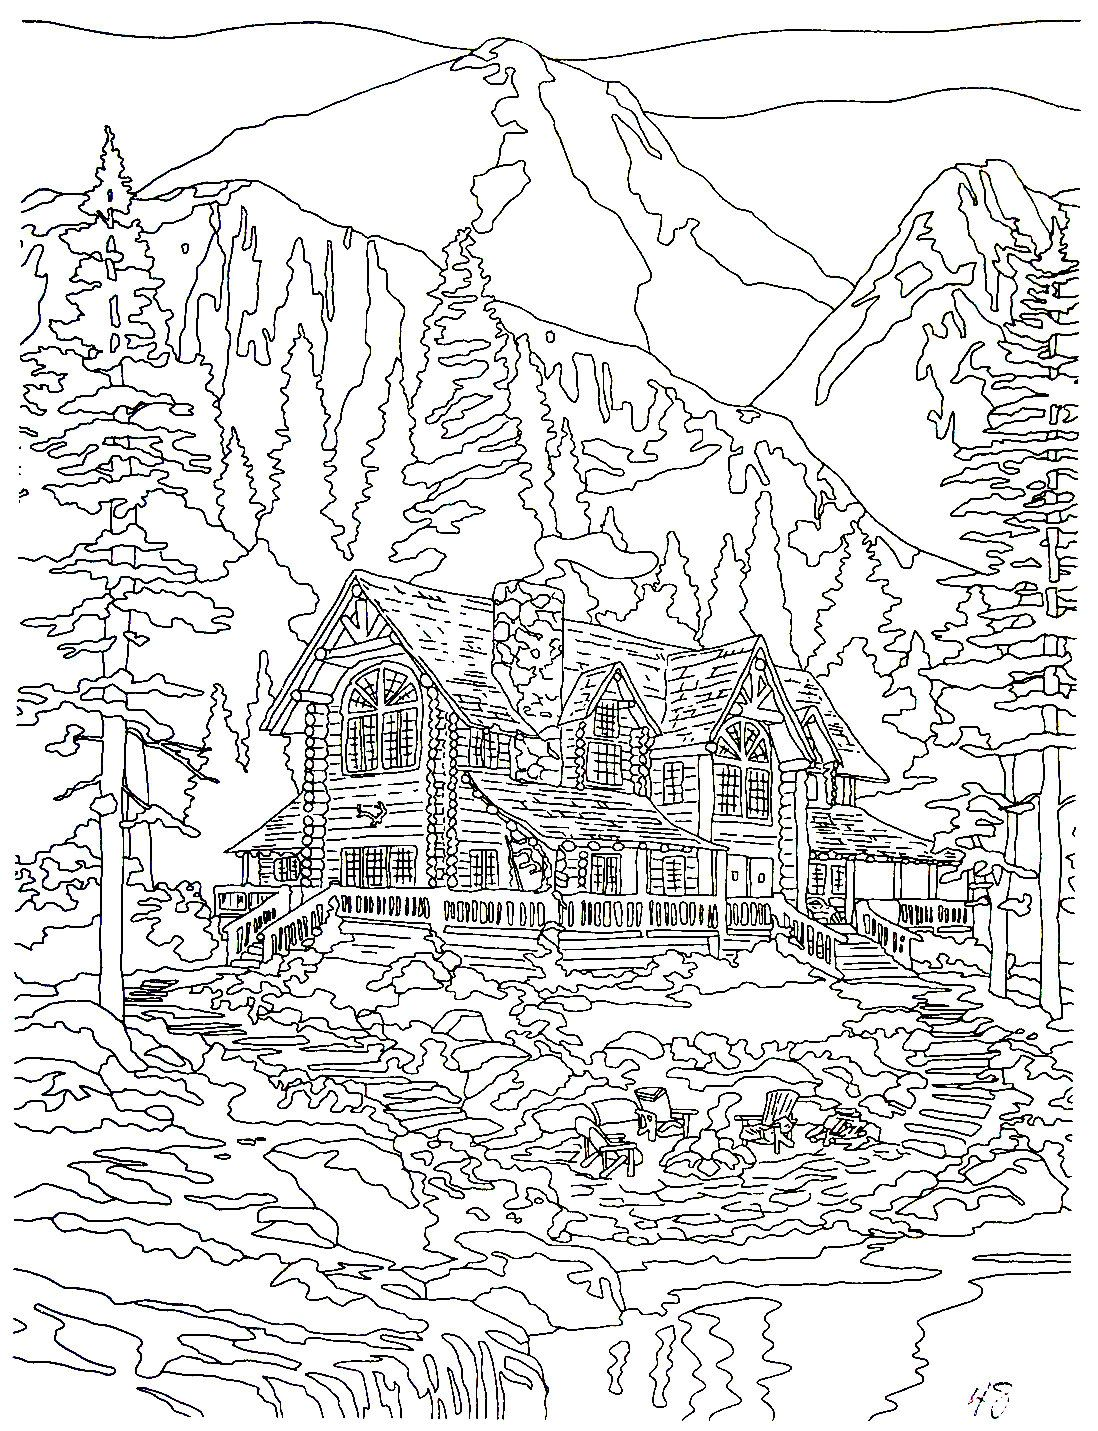 Cathedral Mountain Lodge Thomas Kinkade Painting Coloring Book Printable Page Coloring Books Fall Coloring Pages Kinkade Paintings